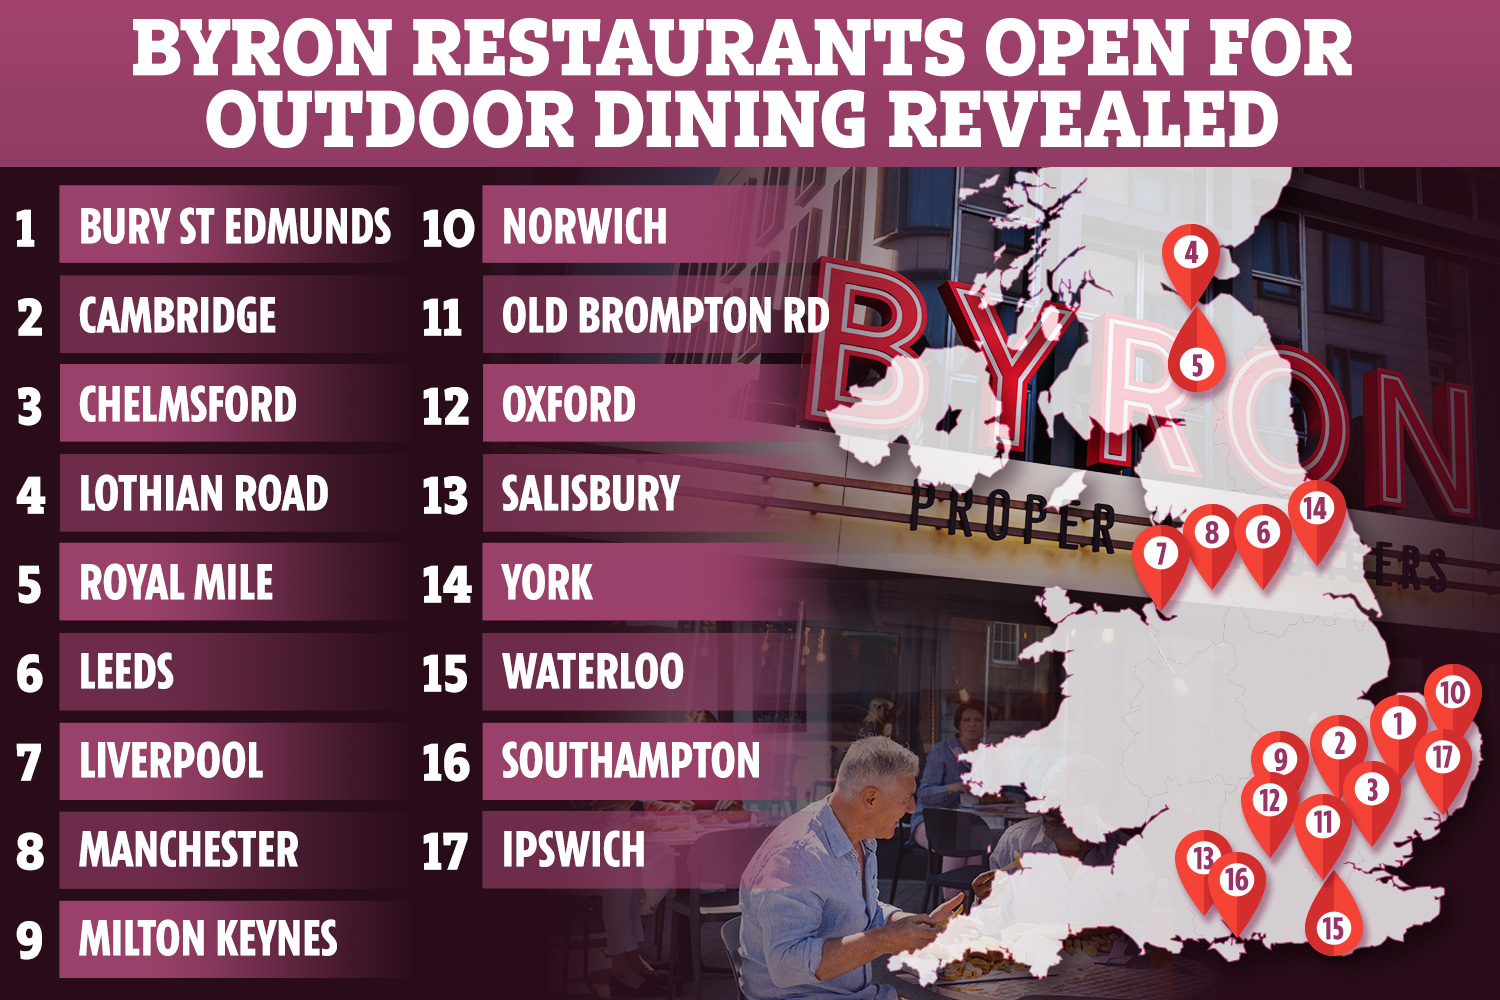 Byron fans will be able to sit outside to enjoy their meal from April 12 at 17 locations